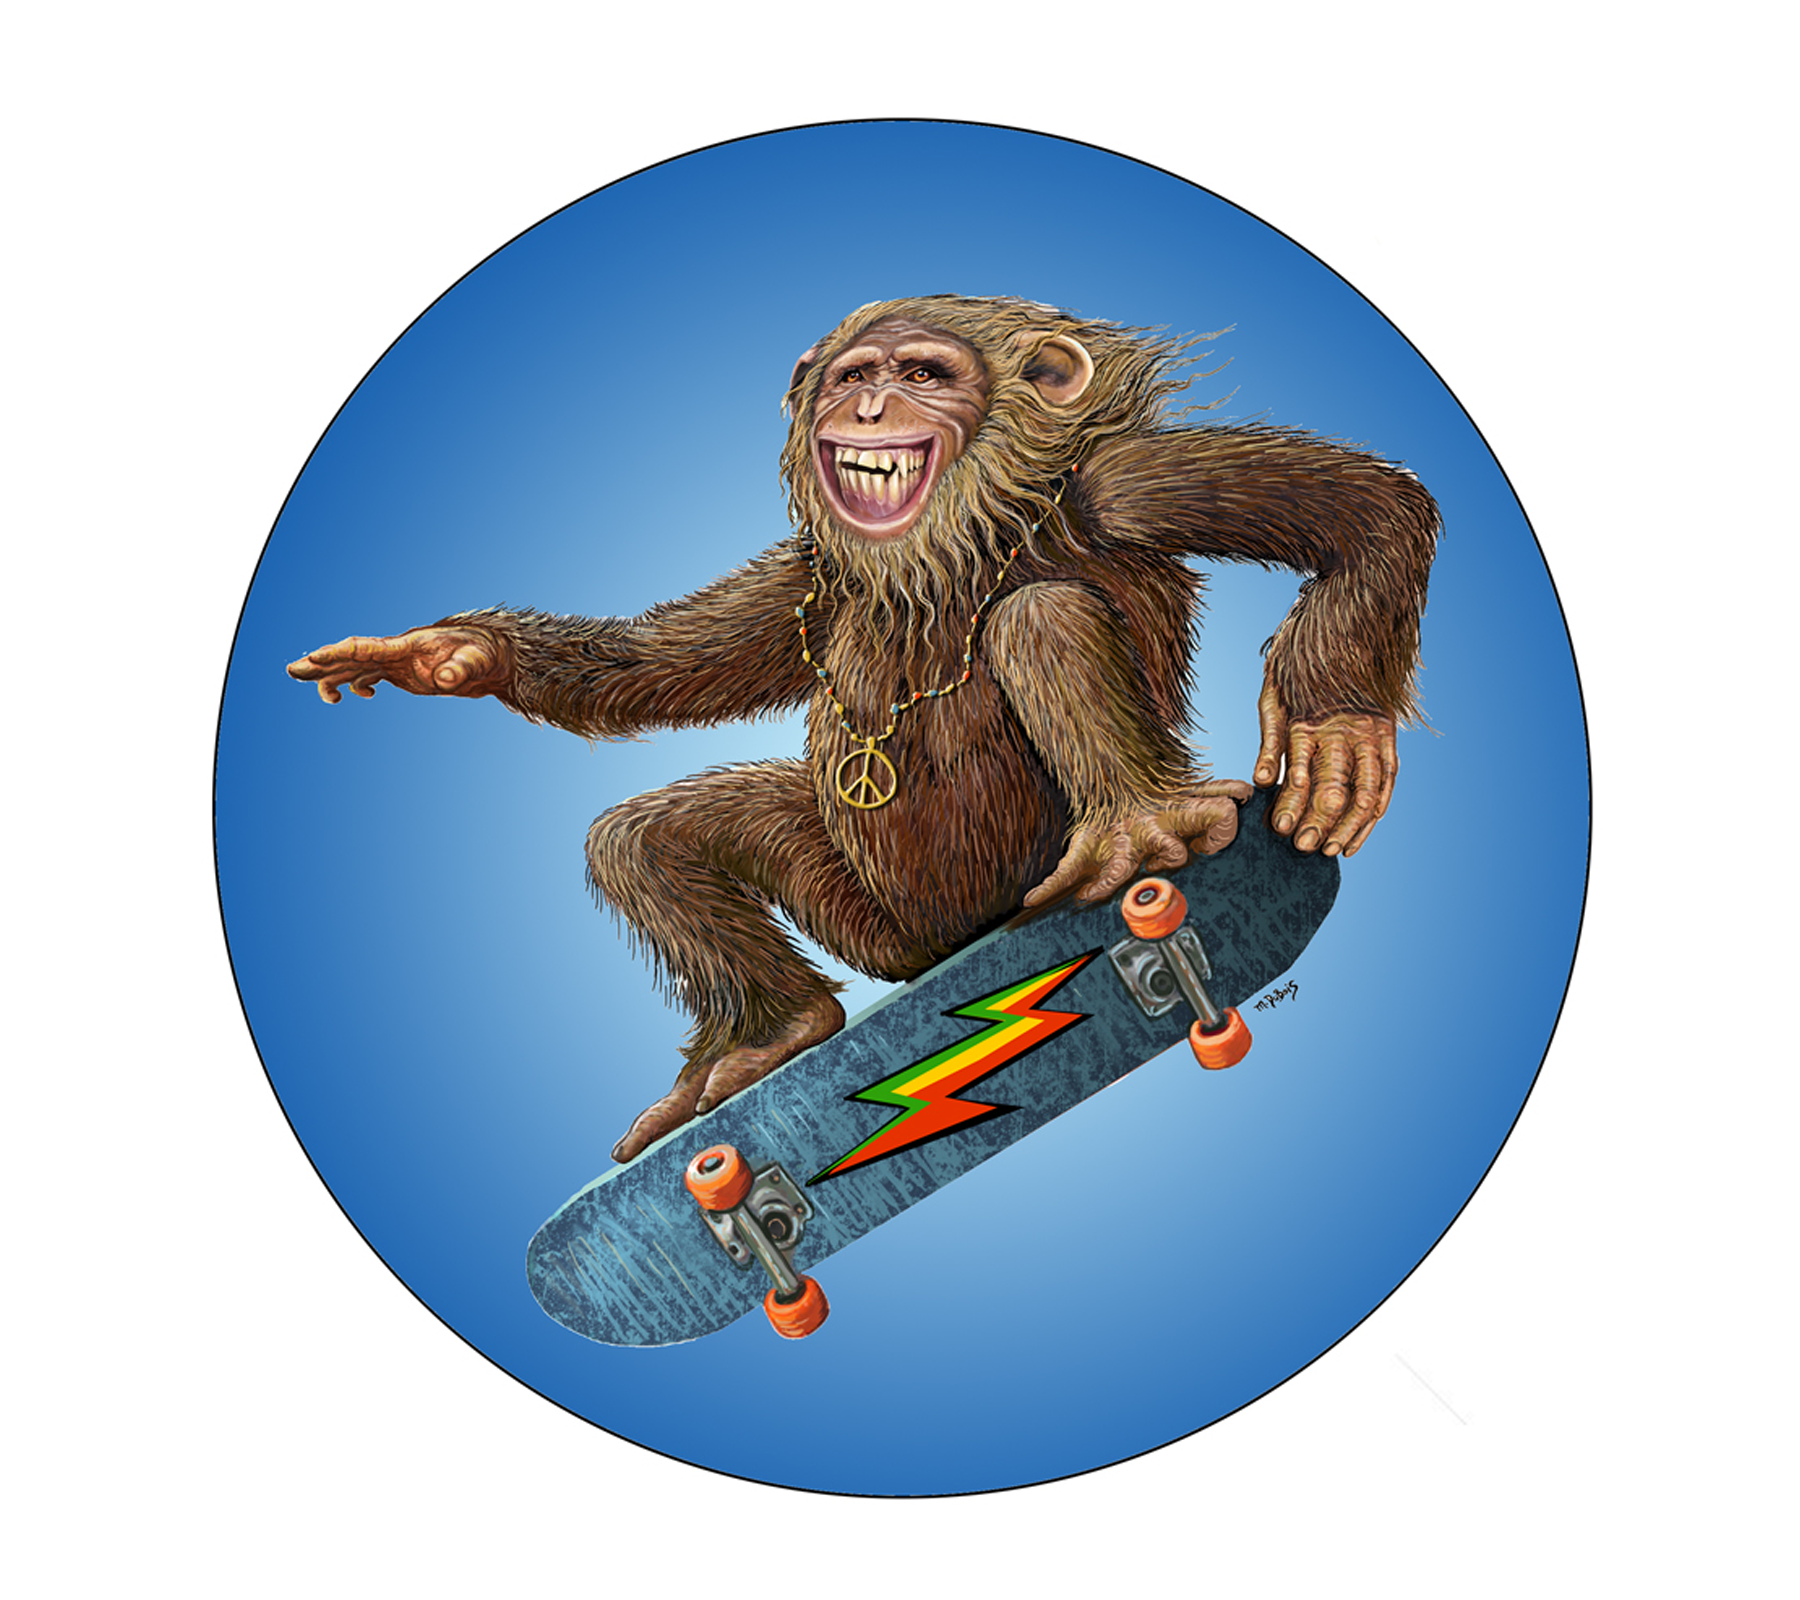 DS-577 // Skateboard Monkey